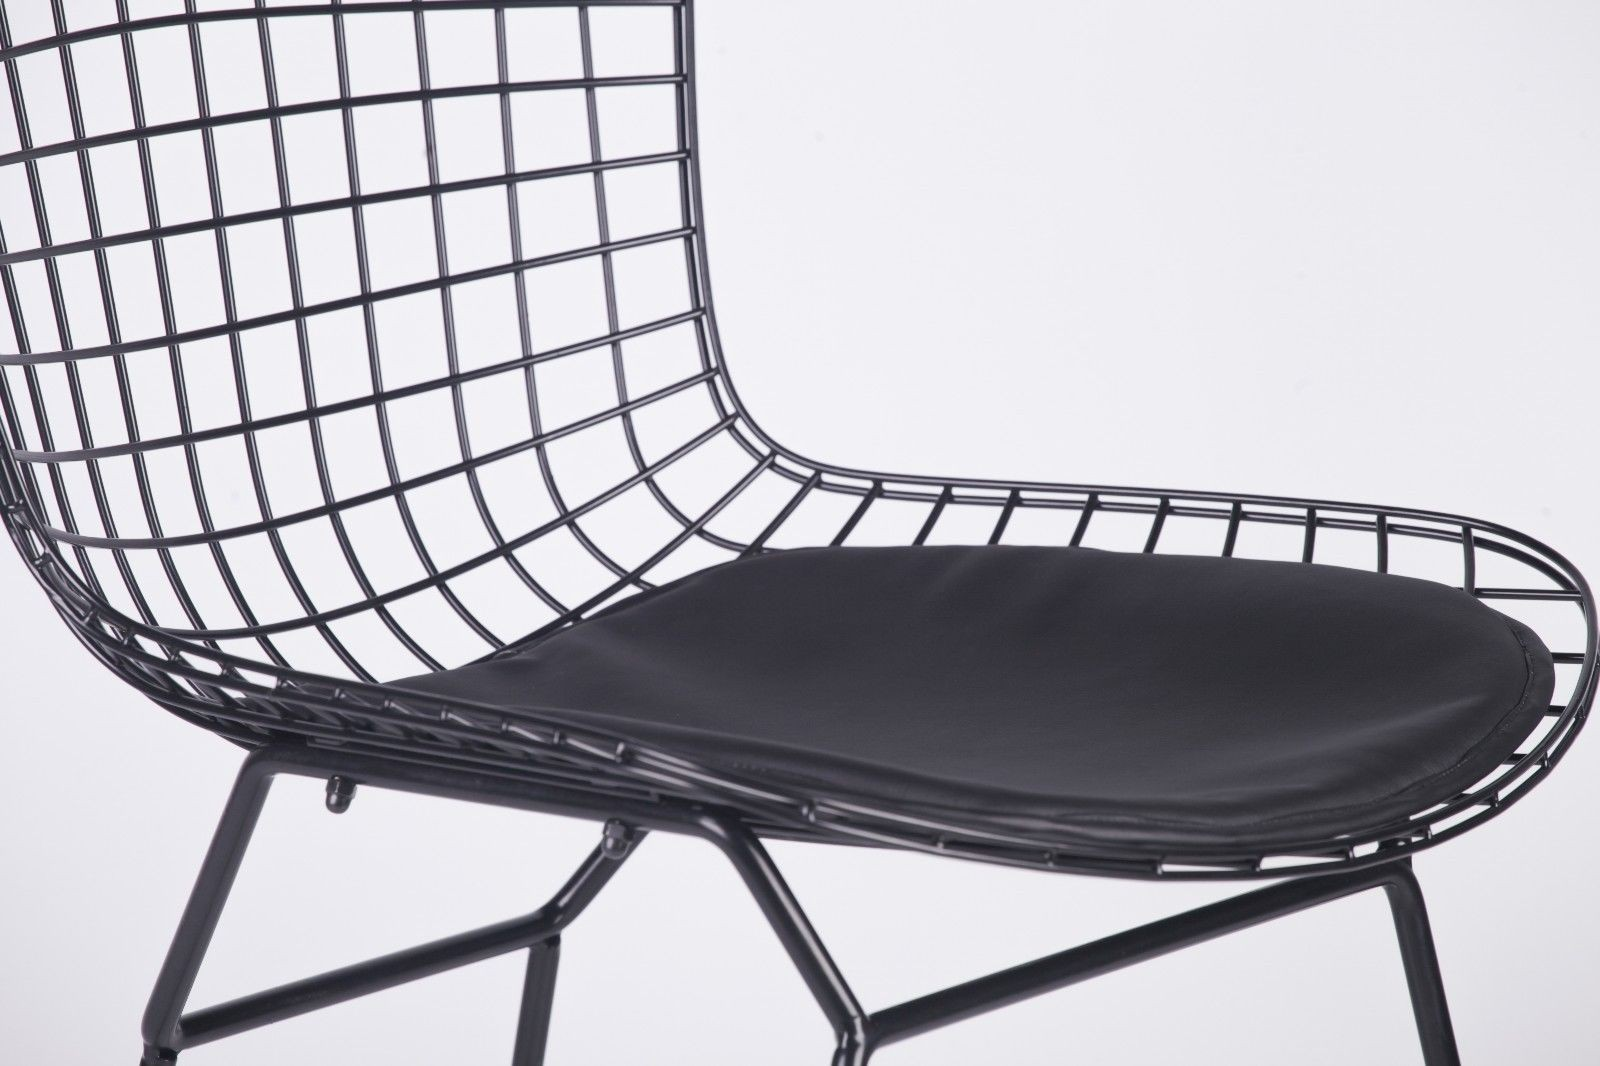 wire dining room chairs folding outdoor canada black mesh chair furniture la maison chic